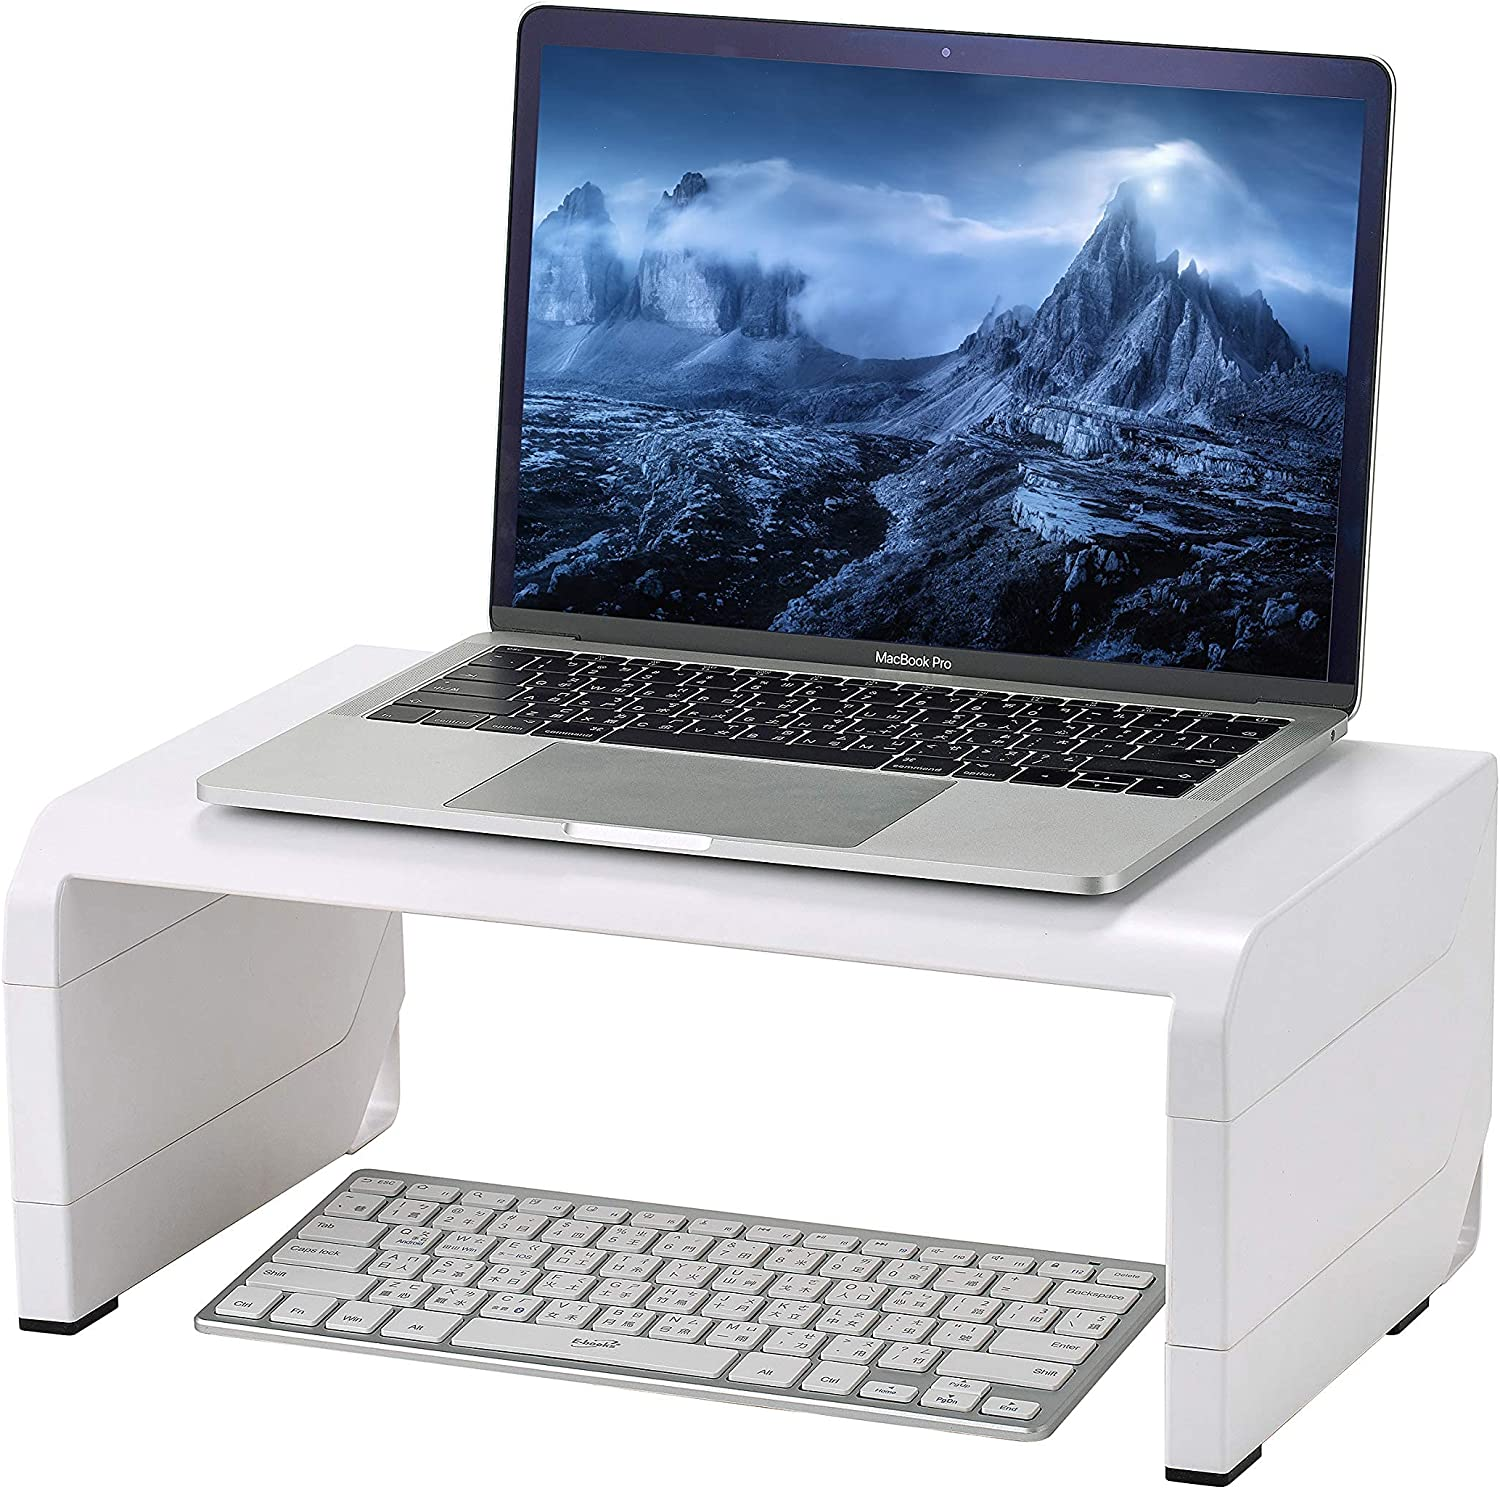 Konnect Adjustable Monitor Stand Riser, Rubber Feet (White)